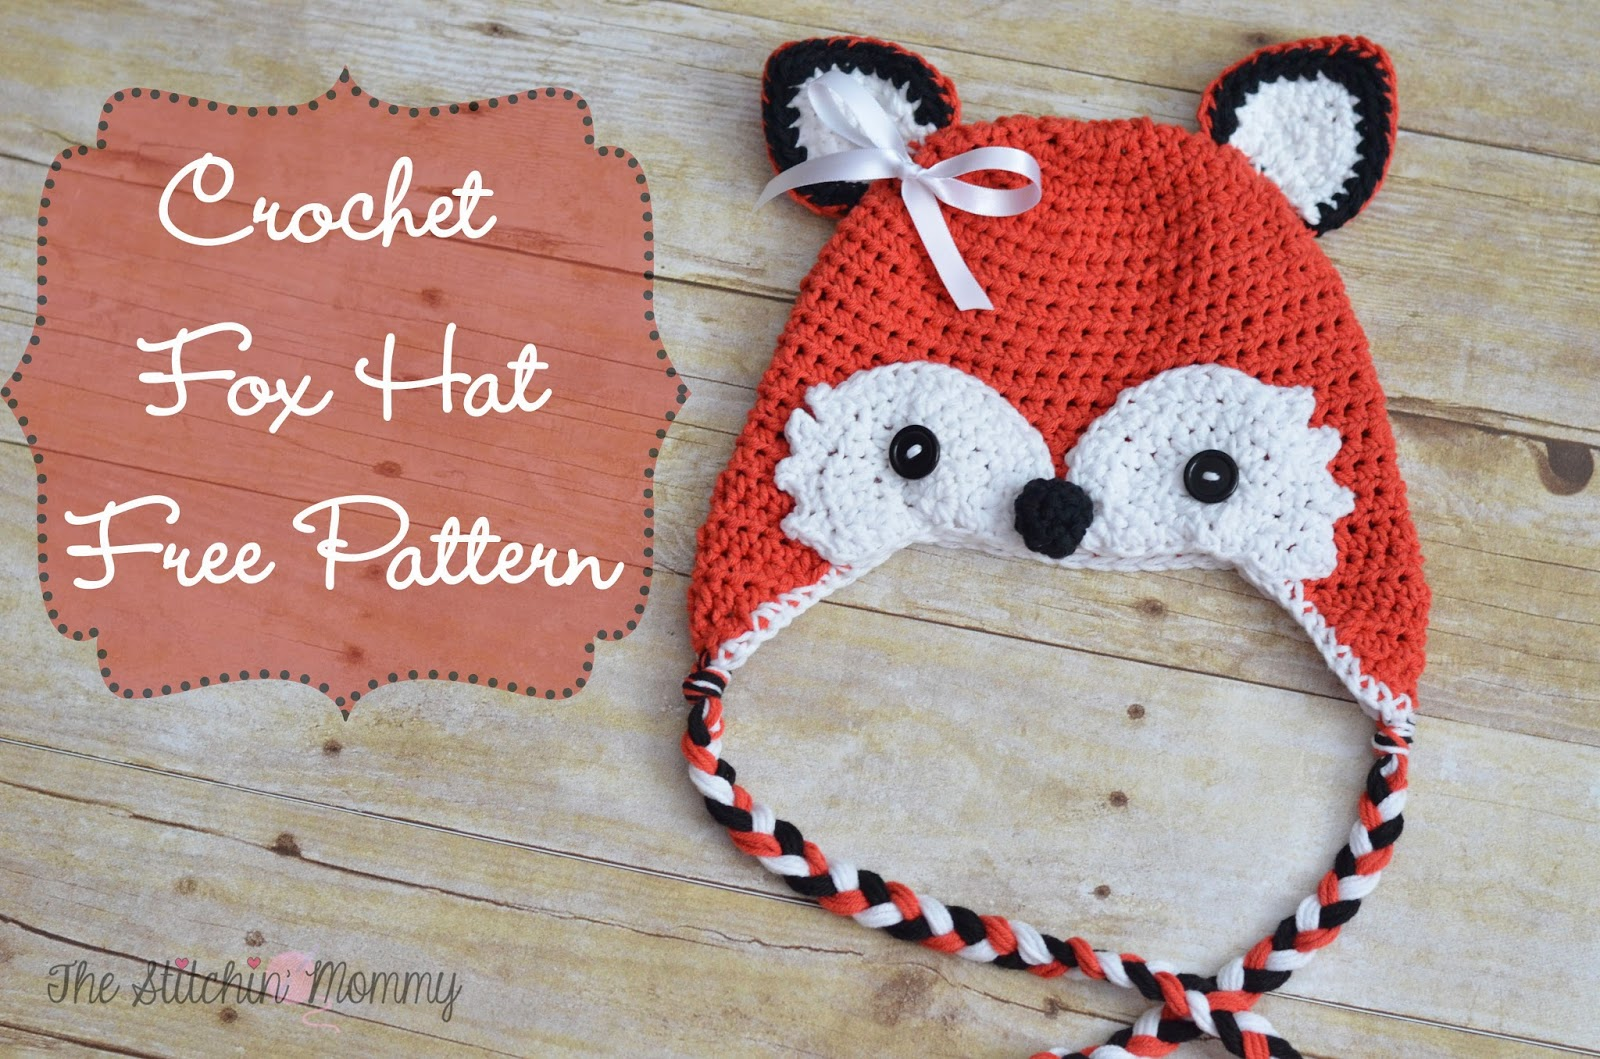 Crochet Fox Hat : Crochet Fox Hat - Free Pattern by The Stitchin Mommy www ...